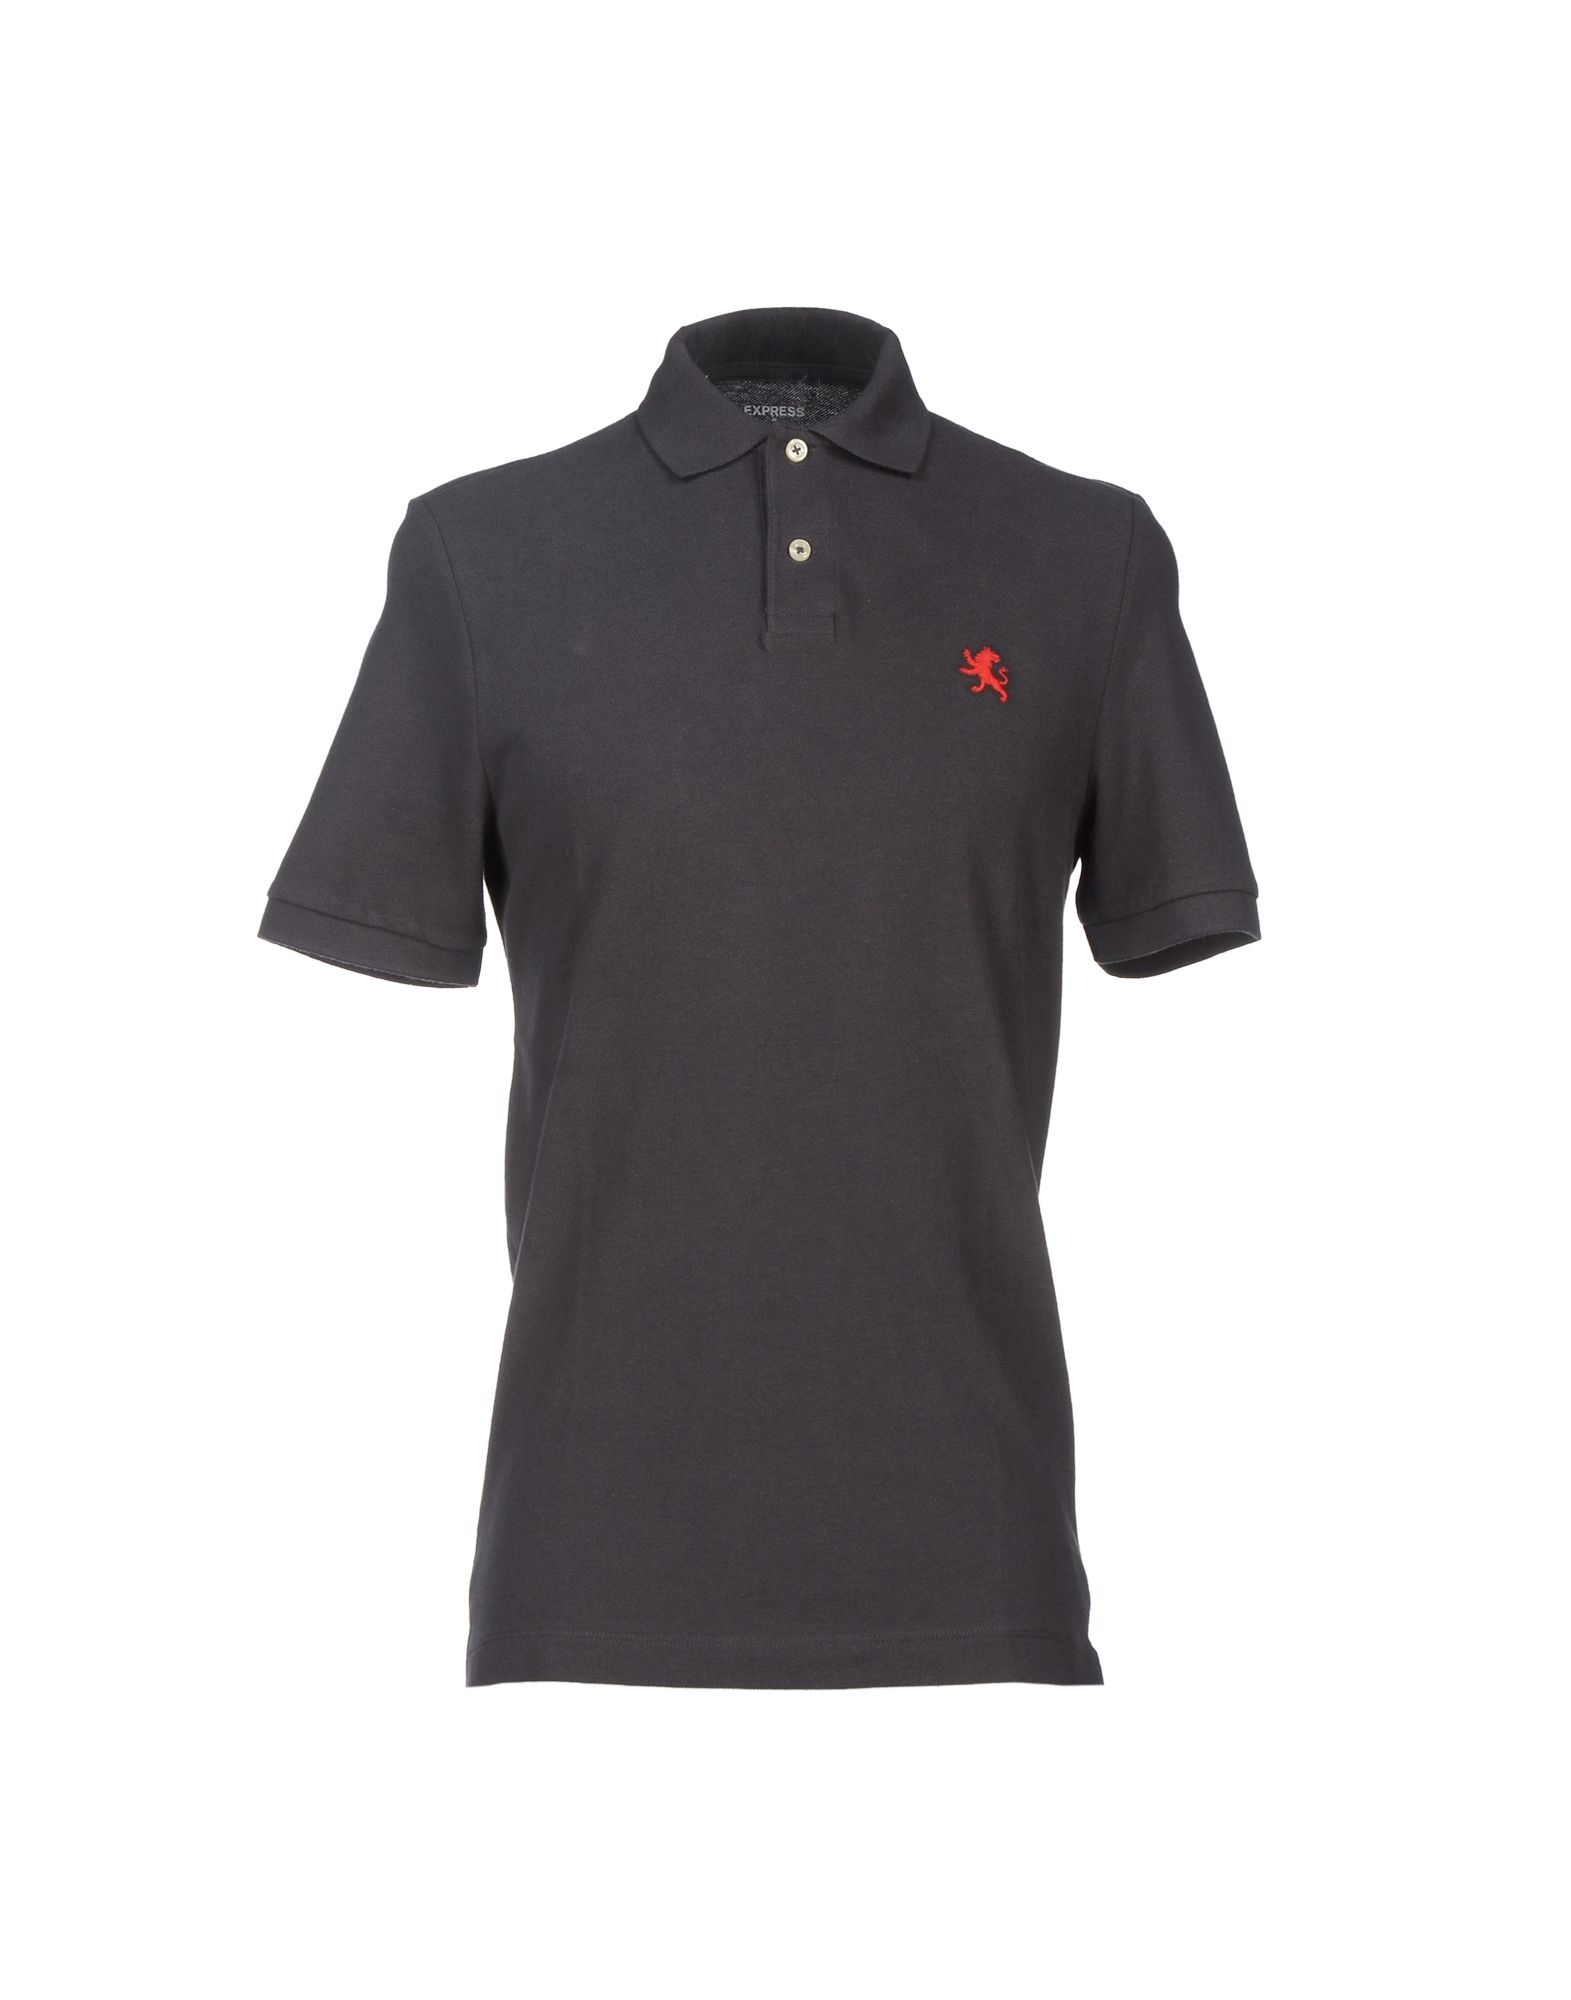 Express Polo Shirt In Gray For Men Lyst